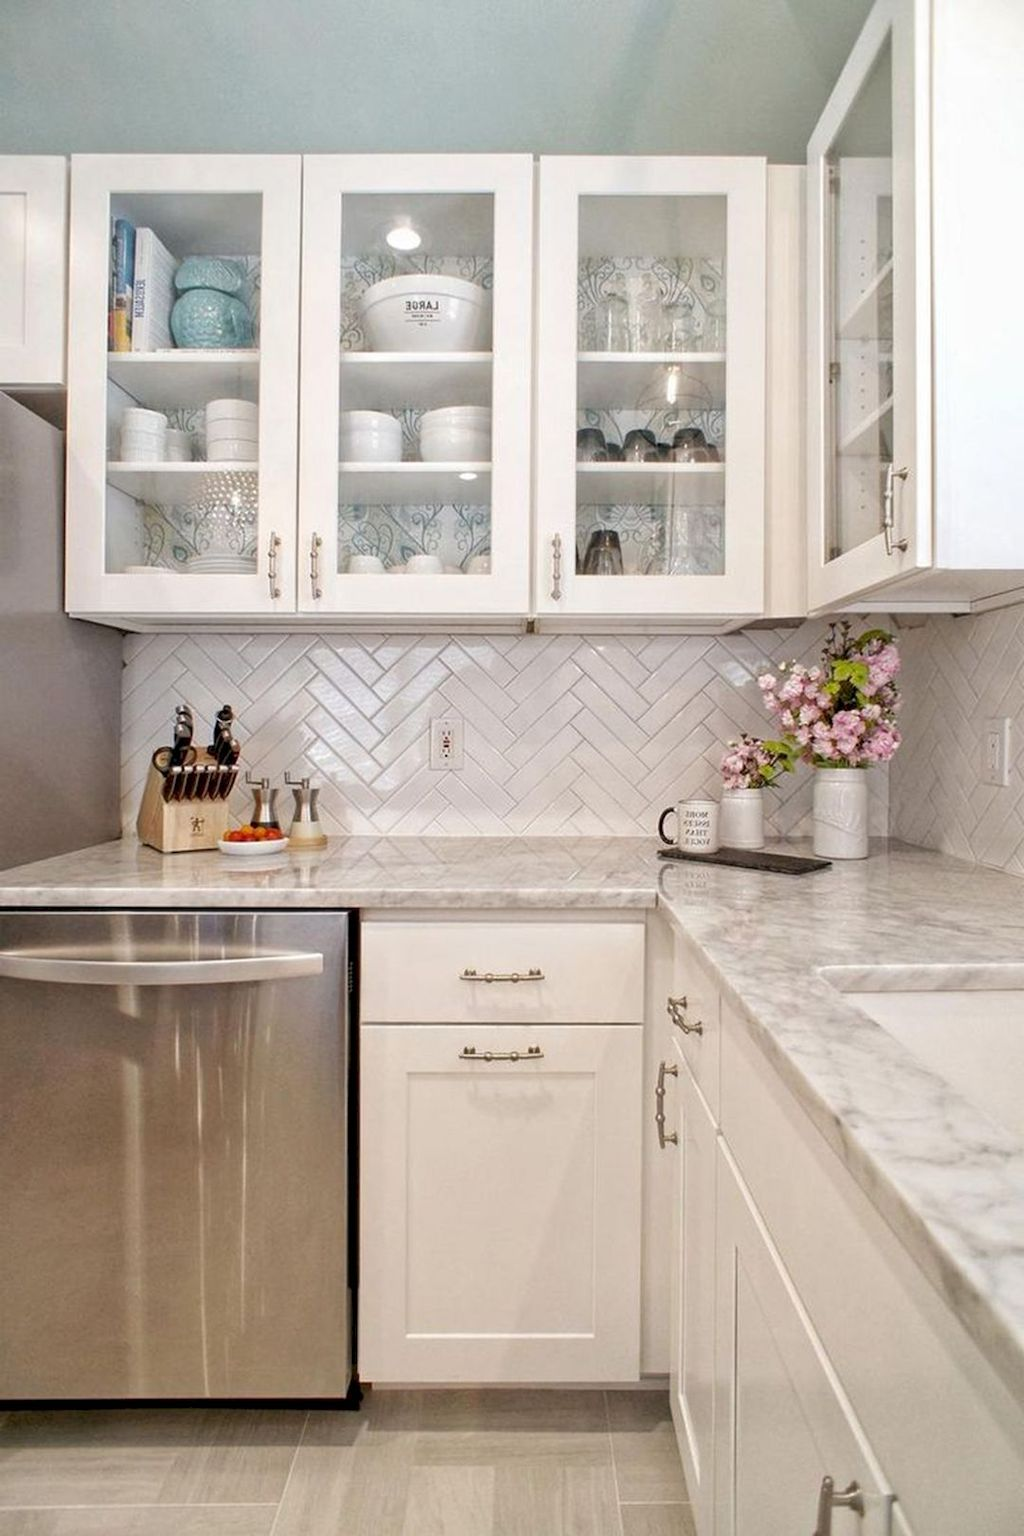 cool 60 awesome modern kitchens ideas remodeling on a budget https livingmarch com 60 on how to remodel your kitchen id=81235